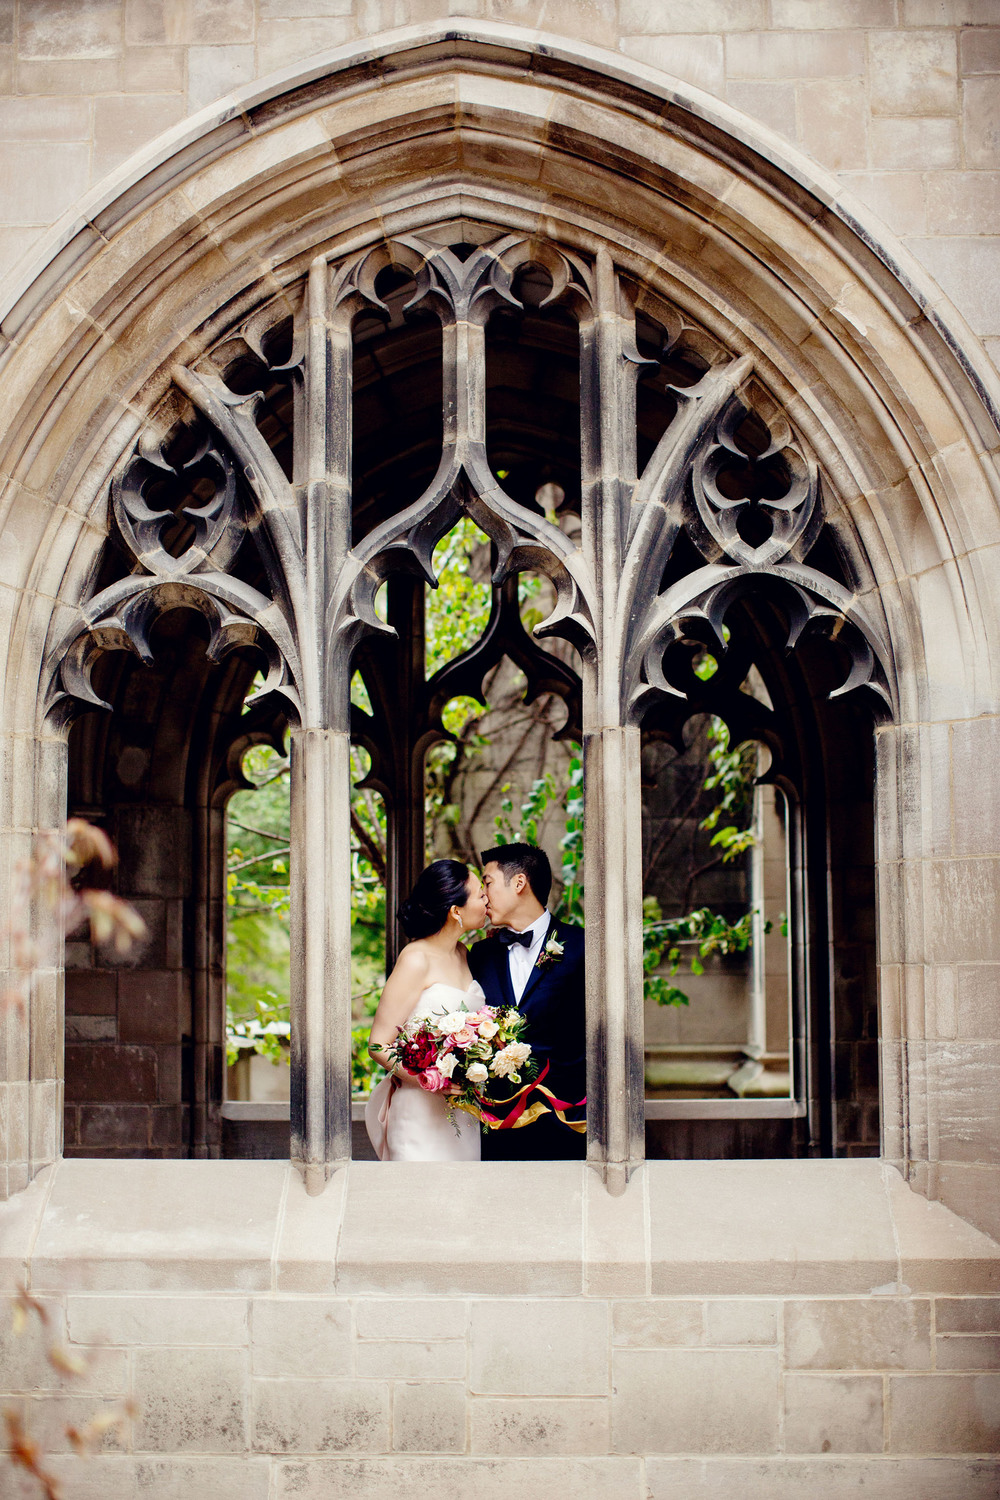 bond chapel wedding portrait bride and groom.jpg